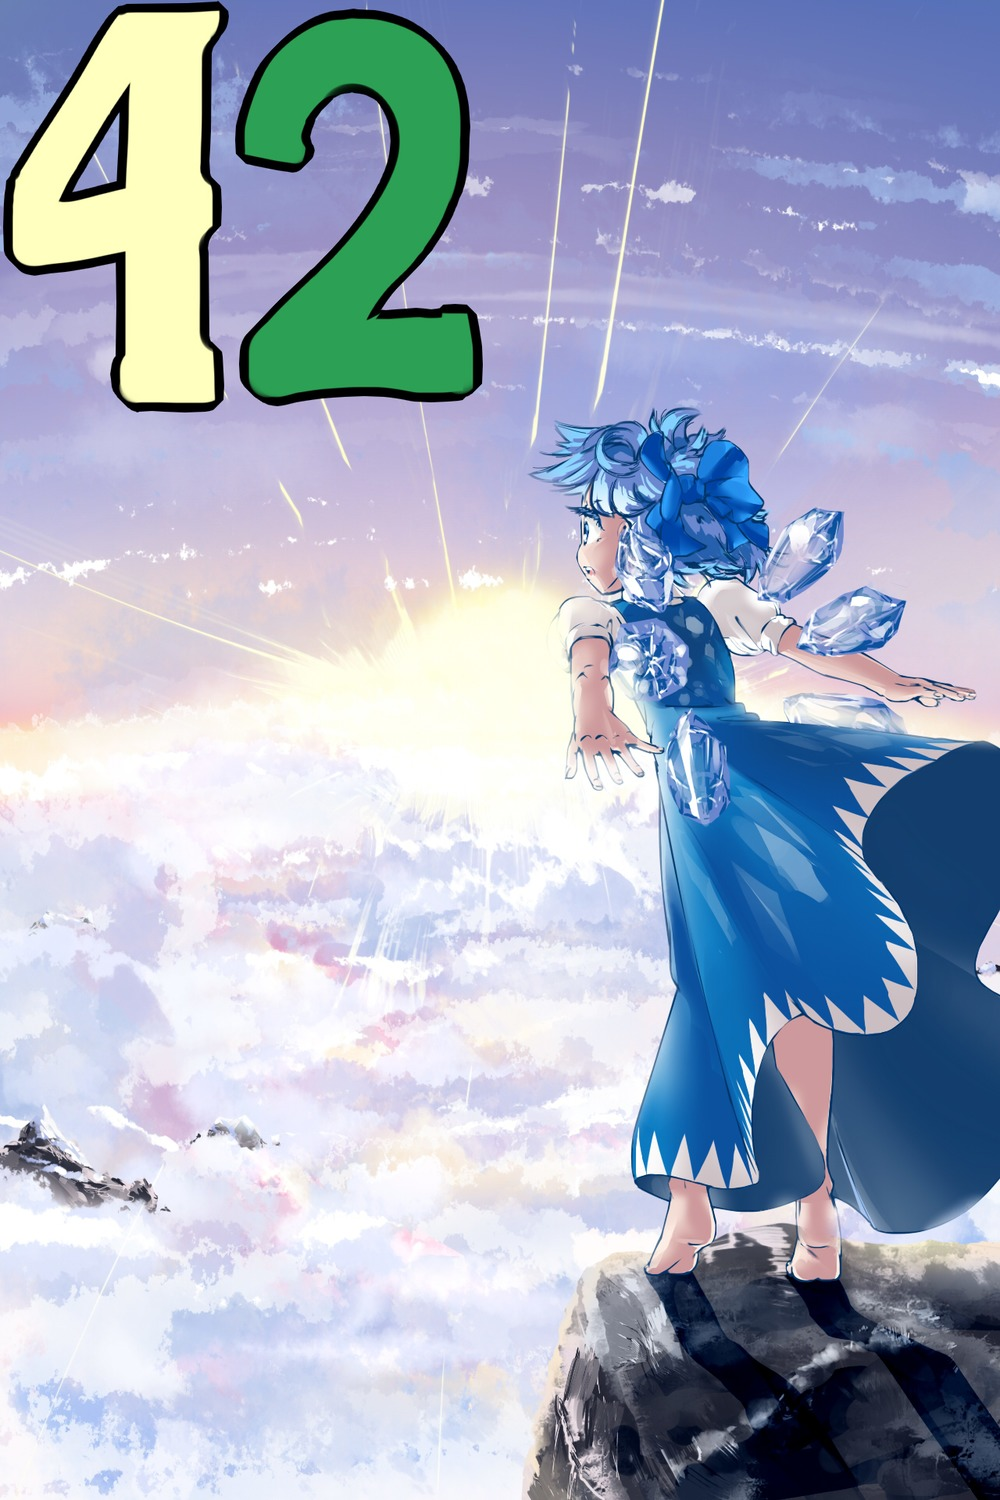 blue_eyes blue_hair bow cirno cloud f2d_(artist) feet ice madskillz_thread_oppic mountains rays short_hair snow sun wings